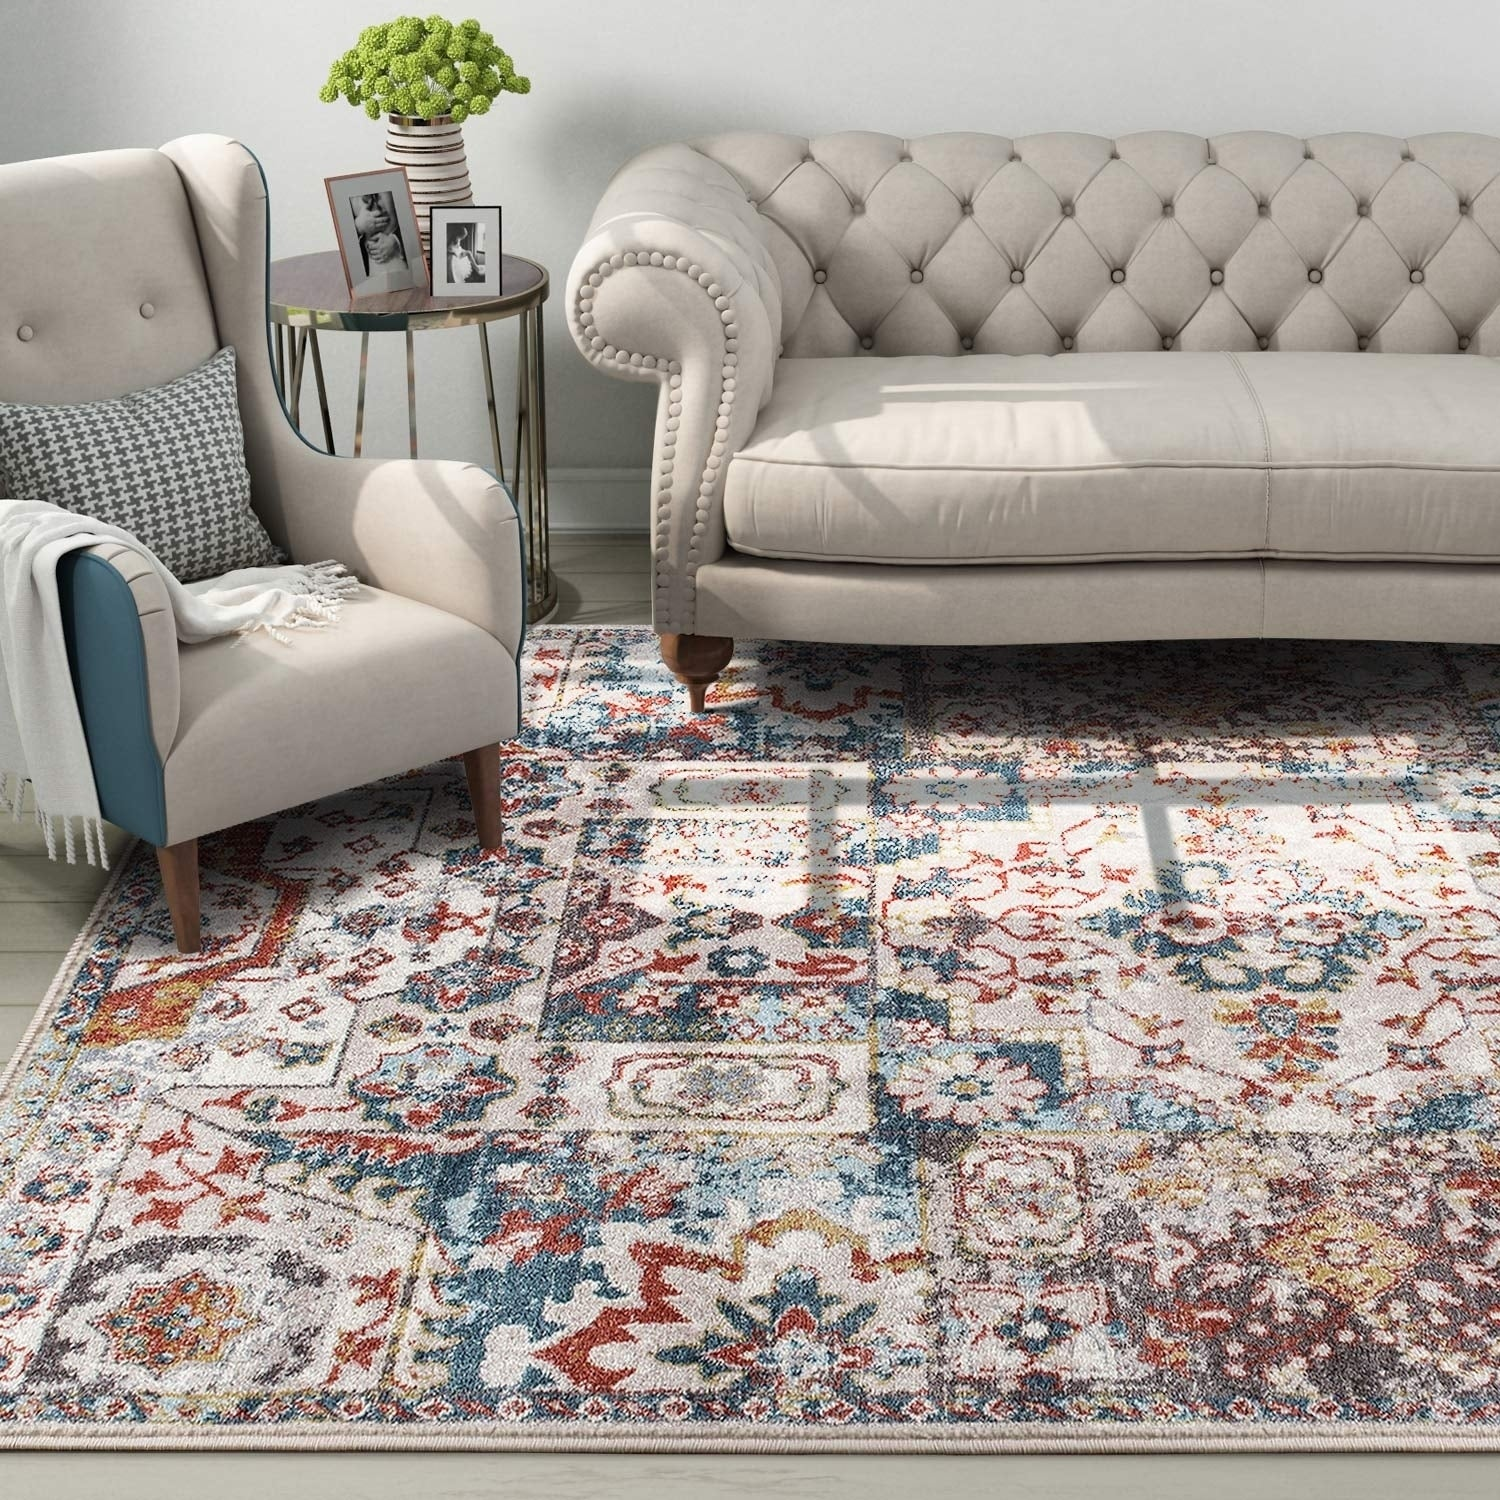 Shop 5 X7 Vintage Shabby Chic Area Rug For Living Room Kitchen Bedroom 5 X 7 5 X 7 Overstock 30405255